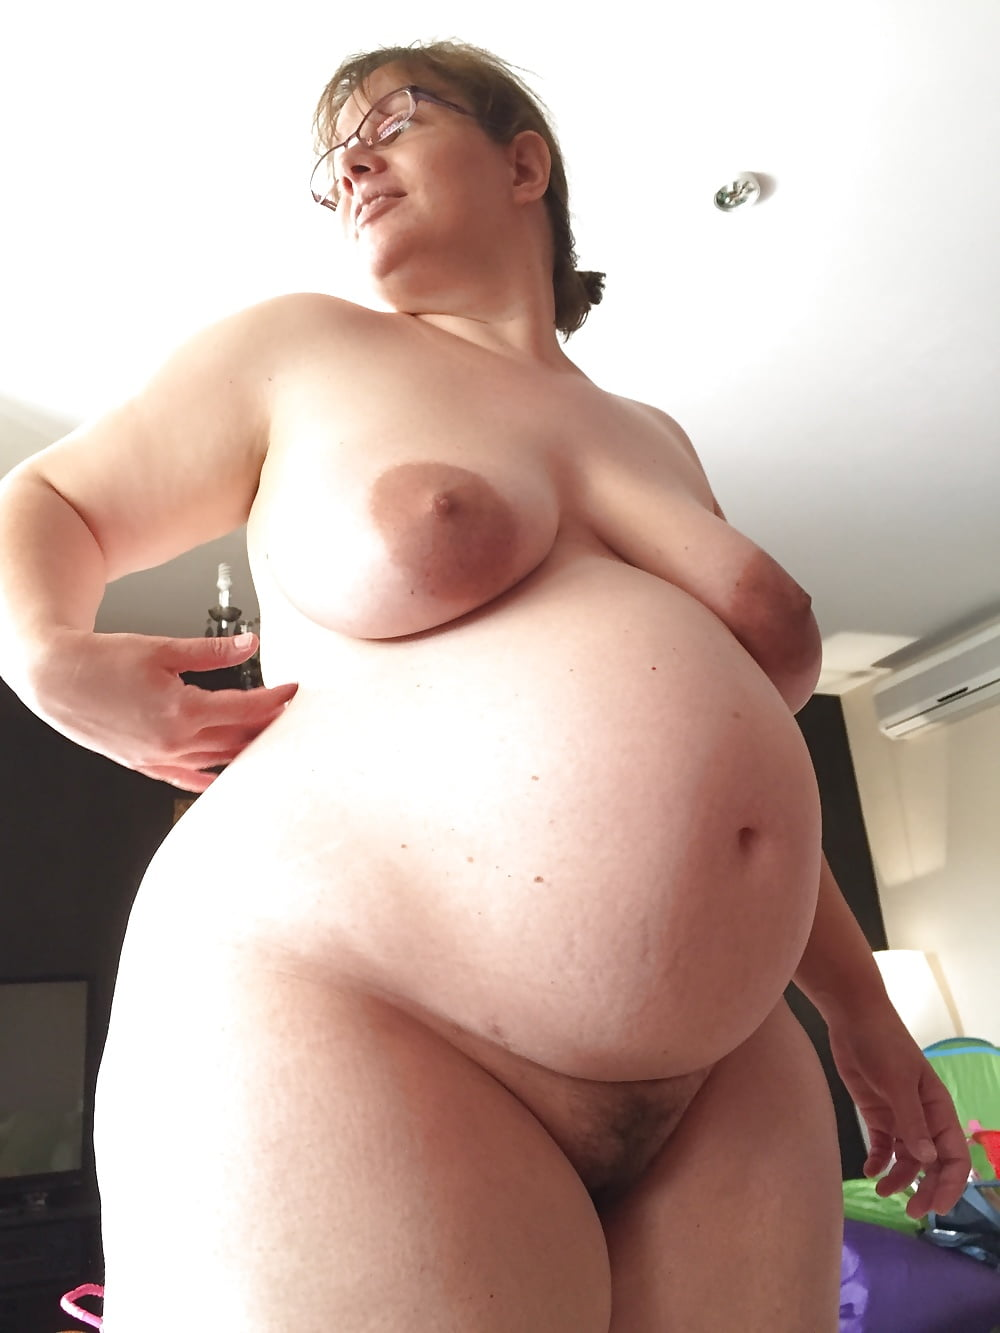 Fat pregnant pussy pics, chubby porn galery